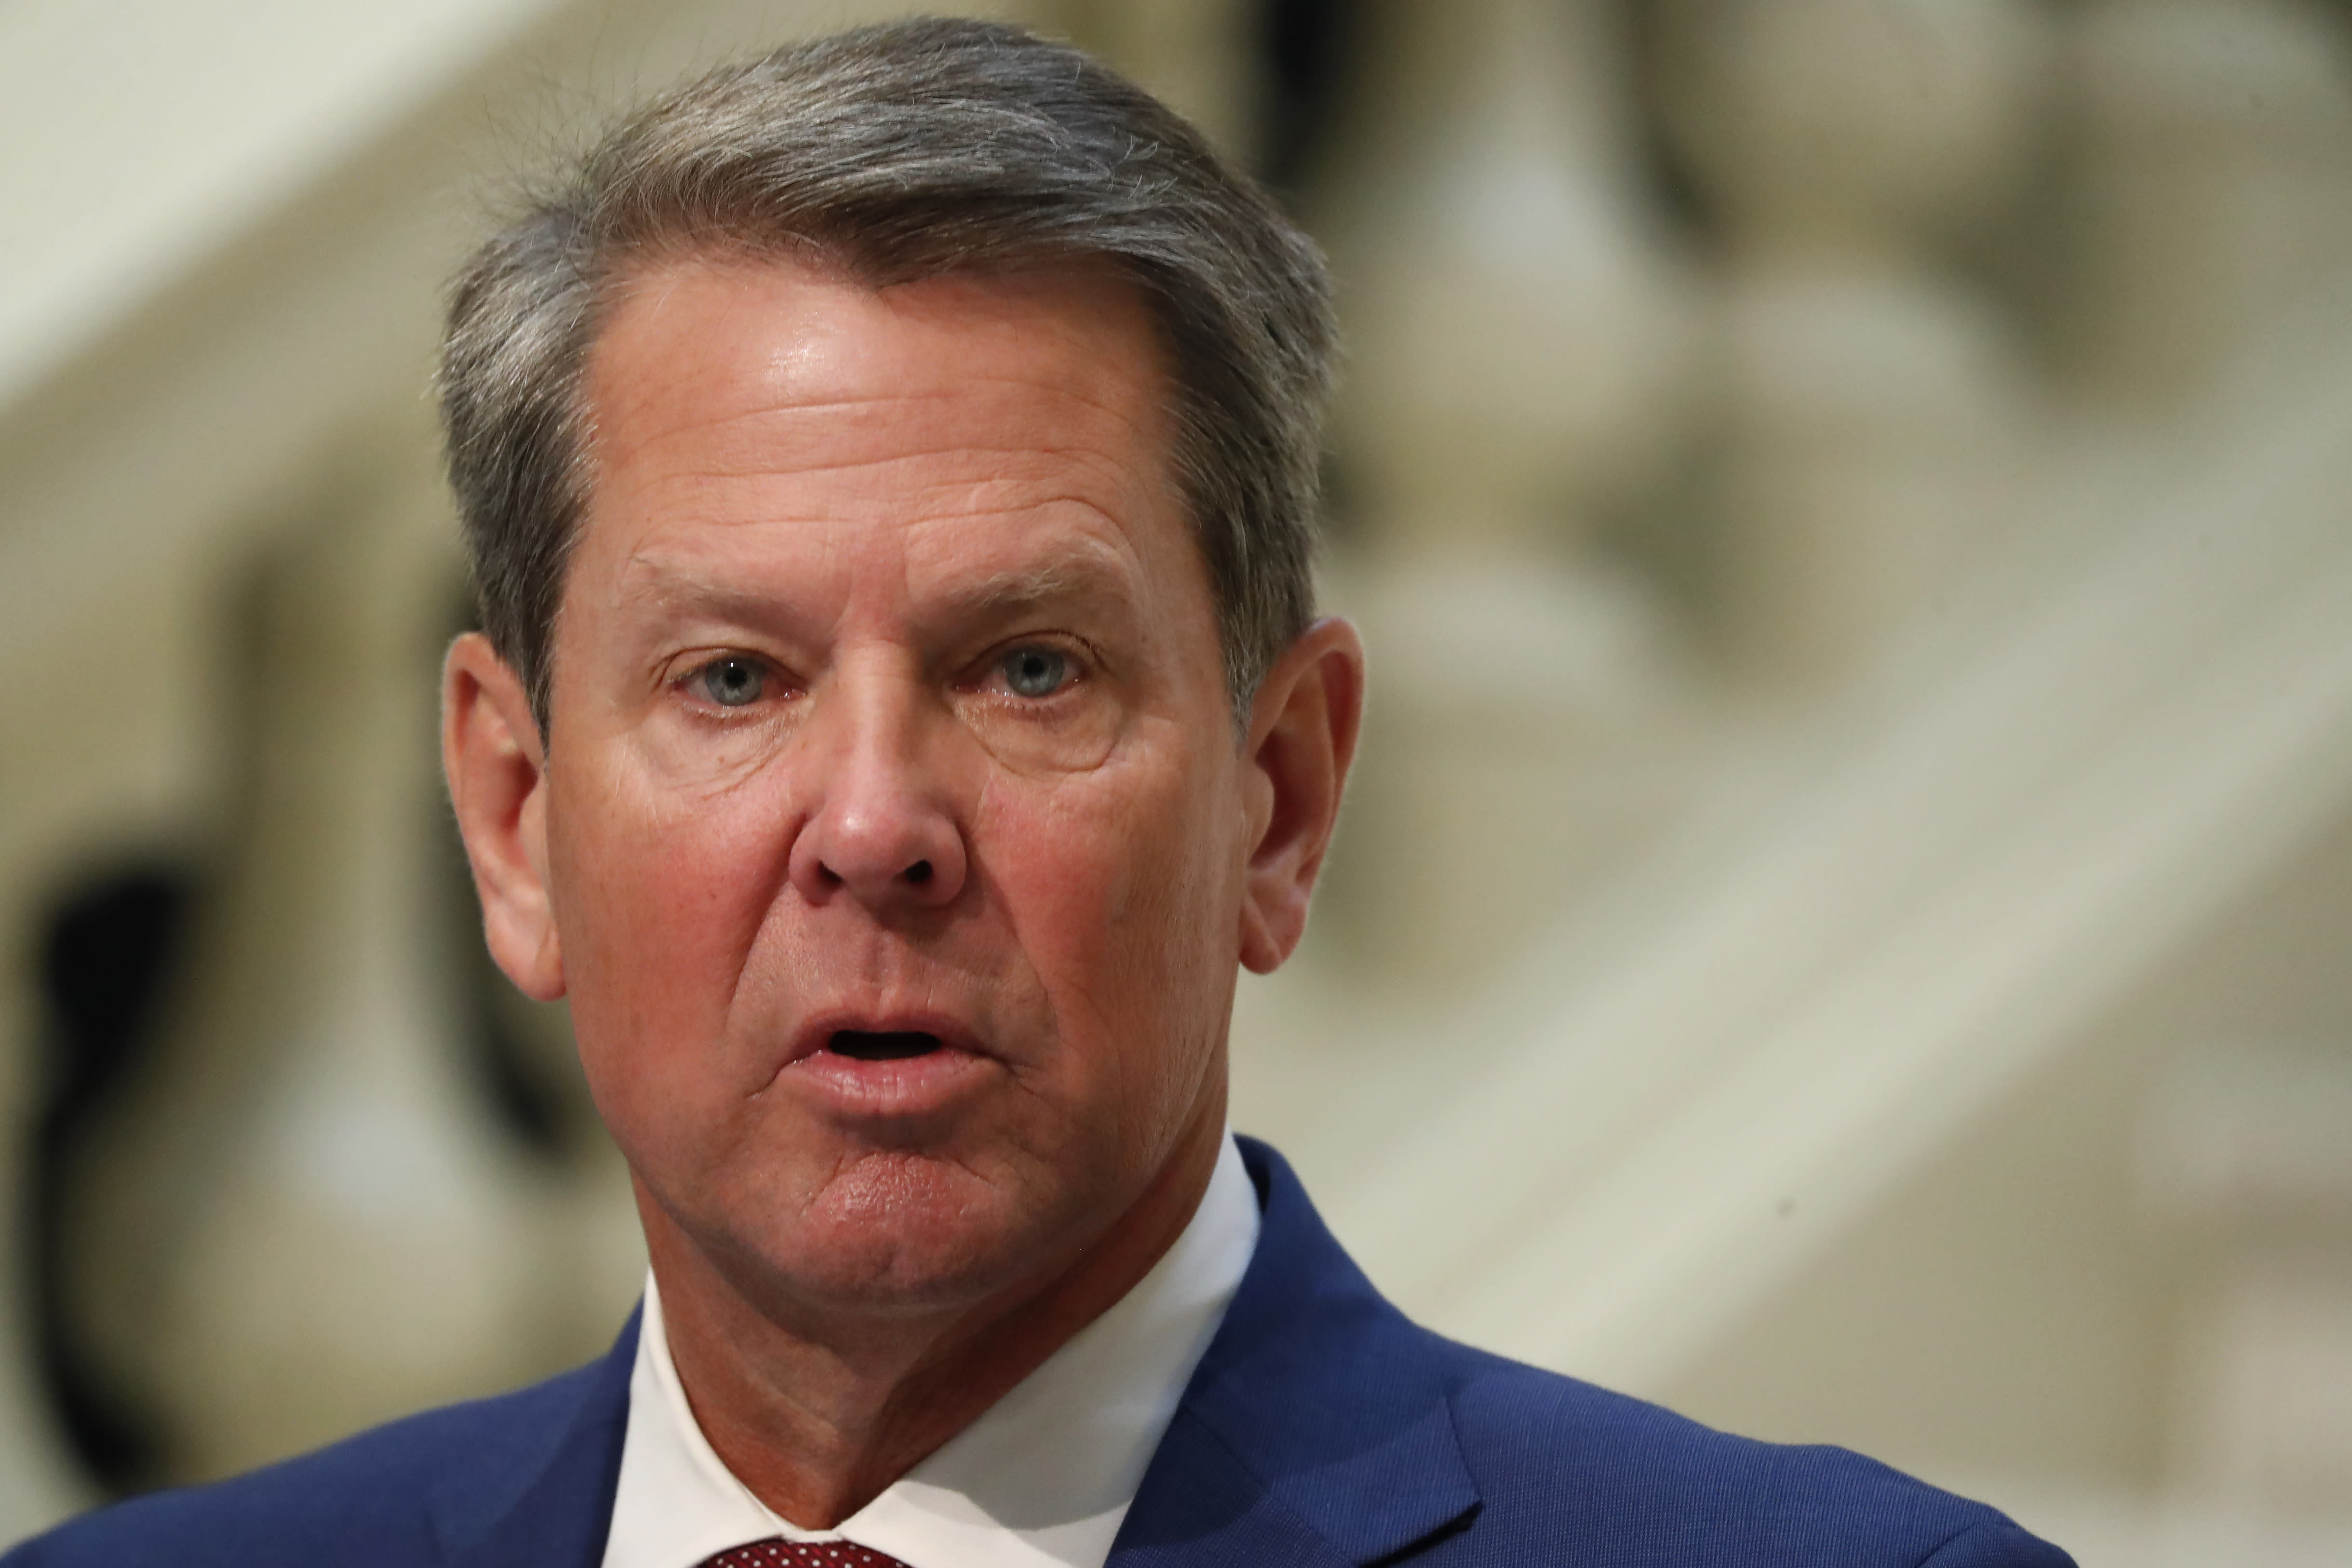 FILE-In this Friday, July 17, 2020 file photo, Georgia Gov. Brian Kemp speaks during a coronavirus briefing at the Capitol, in Atlanta. Kemp on Thursday, Aug. 13, said he's dropping a lawsuit against the city of Atlanta in a dispute over the city's requirement to wear masks in public and other restrictions related to the COVID-19 pandemic. (AP Photo/John Bazemore, File)